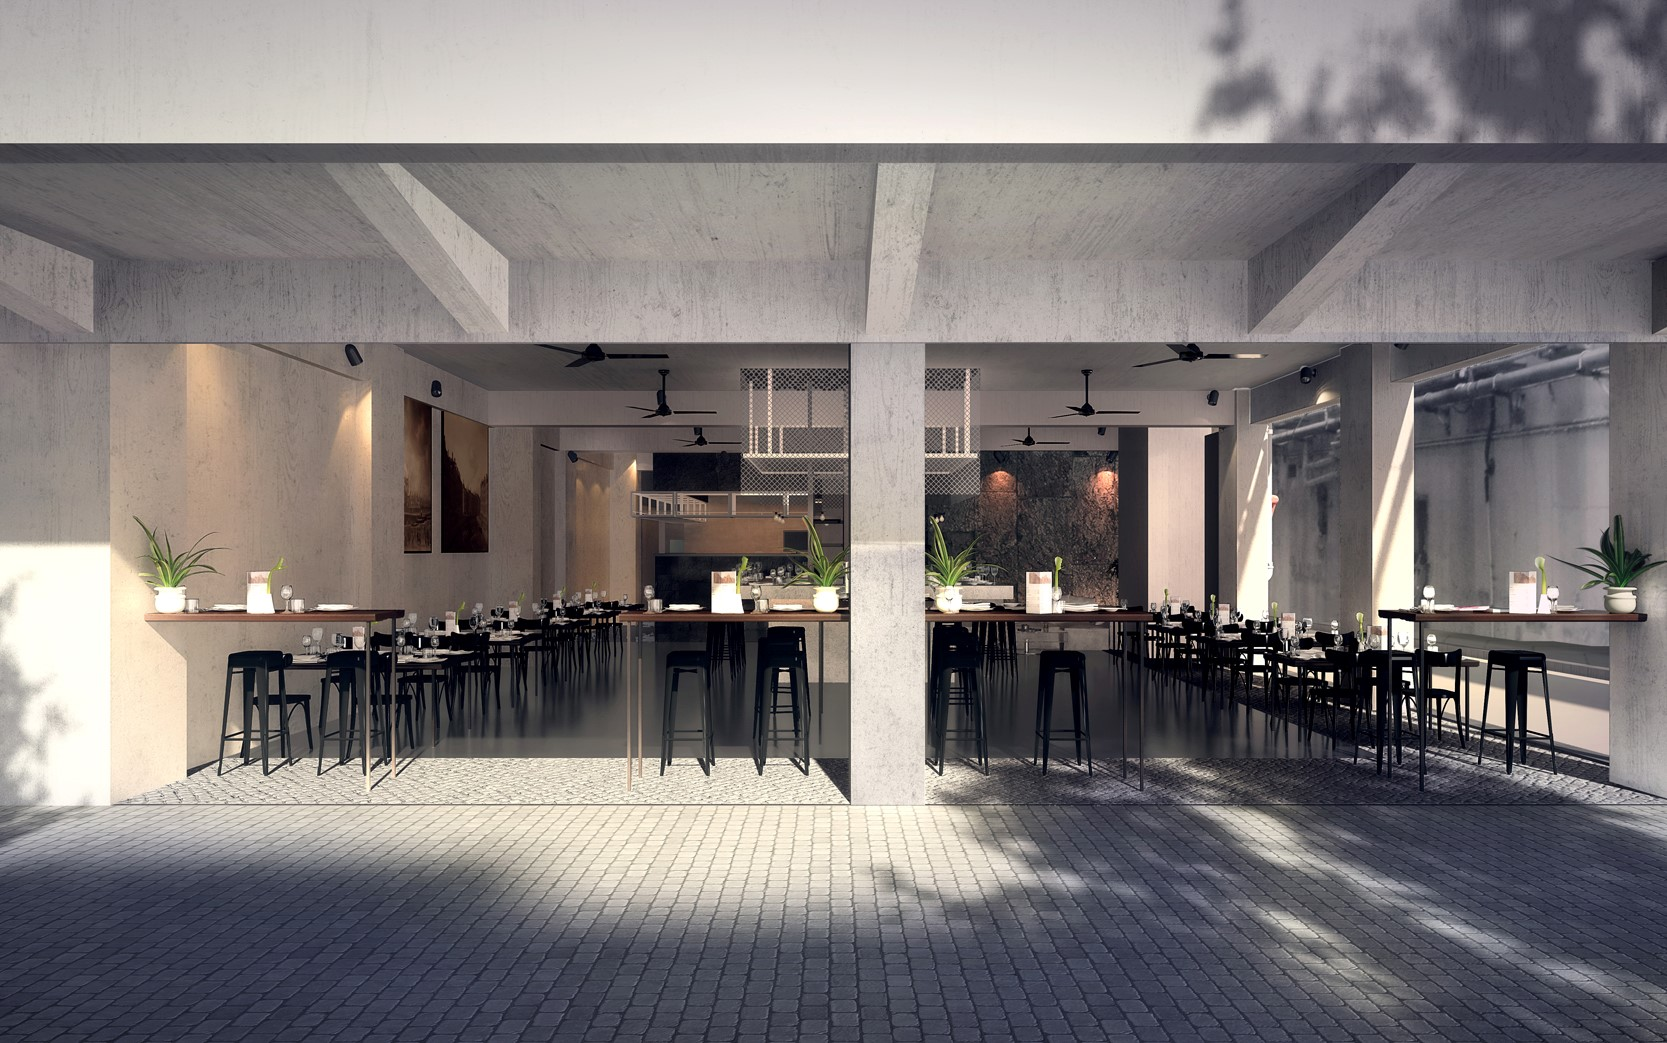 yatfulane-final-renderings-restaurant-1